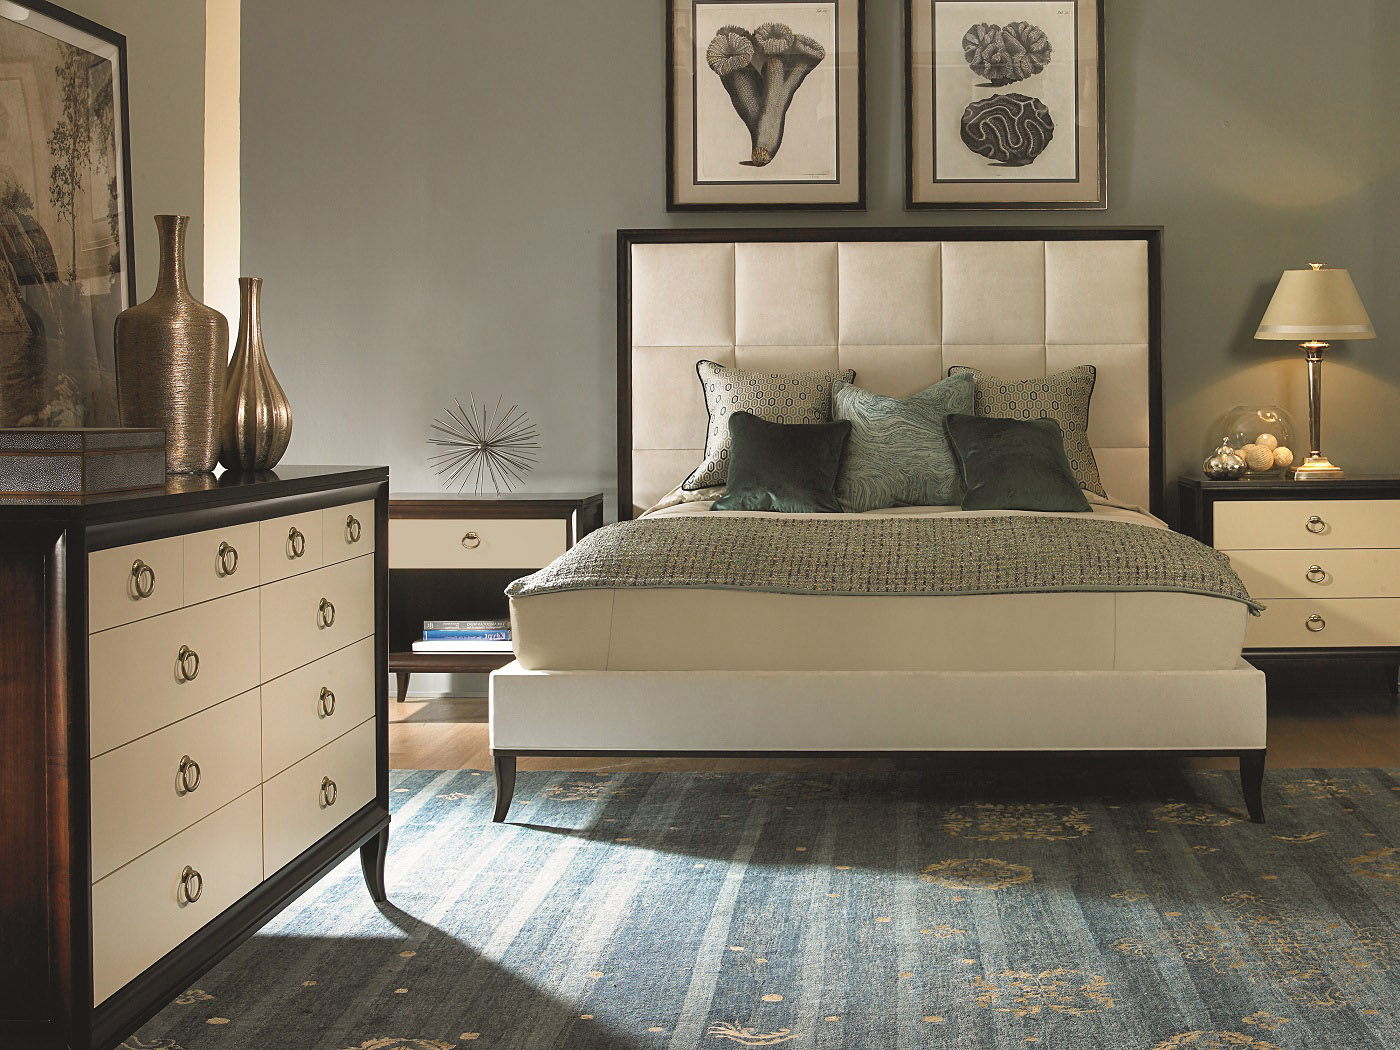 Ordinaire BEDROOMS THAT INSPIRE Find Decorating Inspiration For Your Home